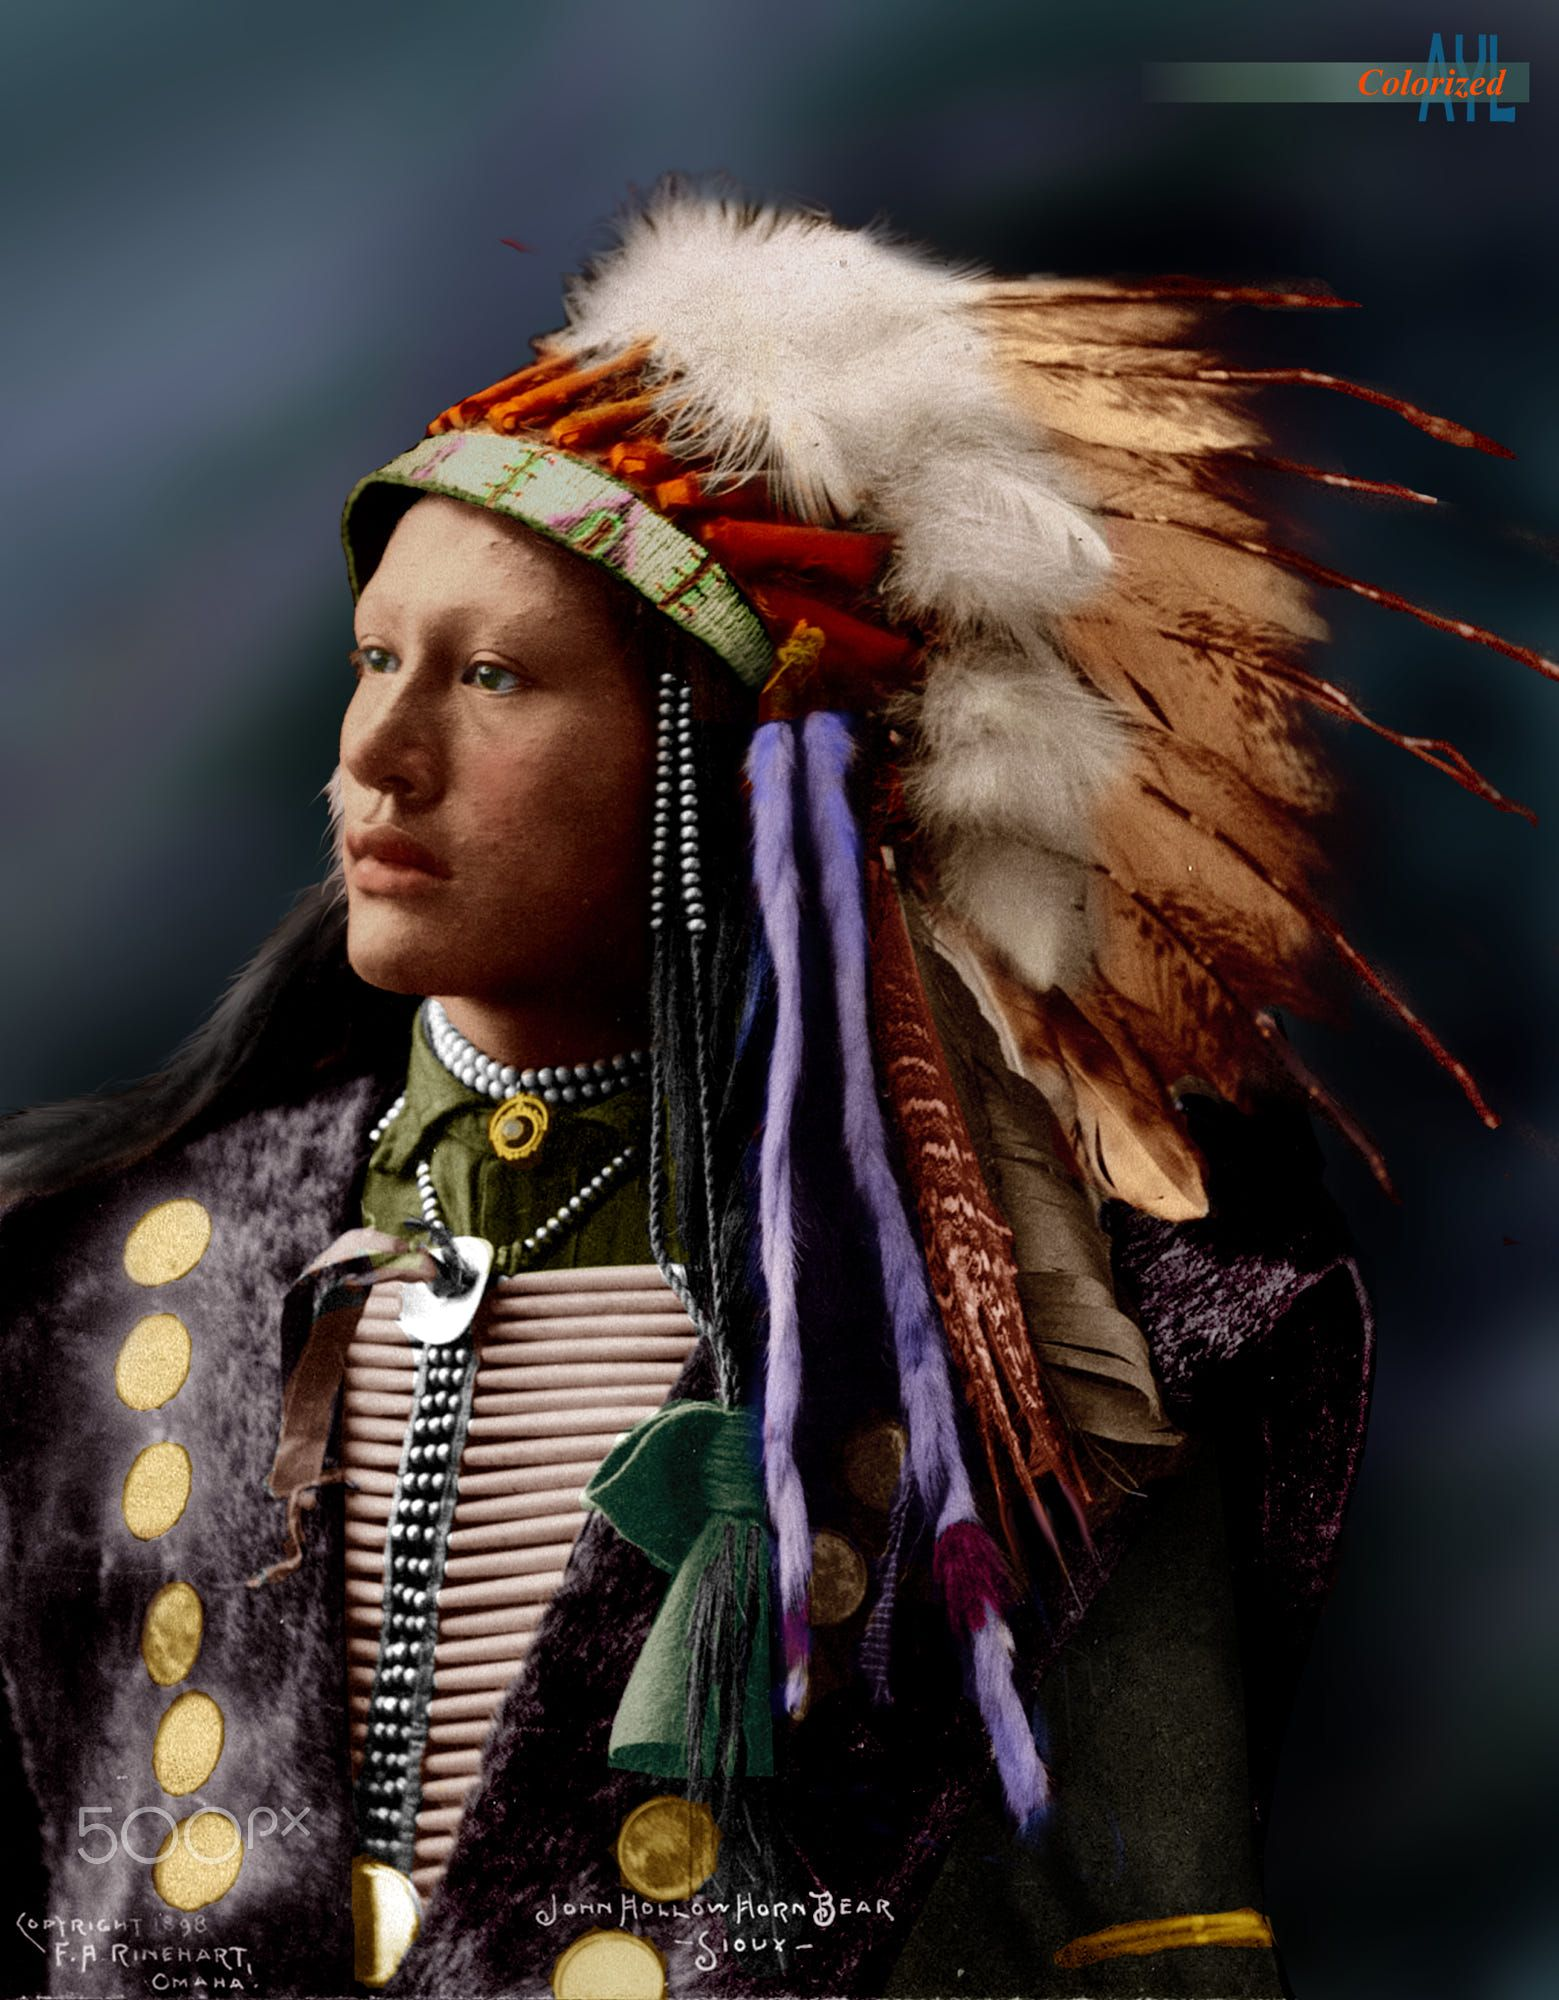 Colorized John Hollow Horn Bear Sioux by Alex Lim on 500px ...